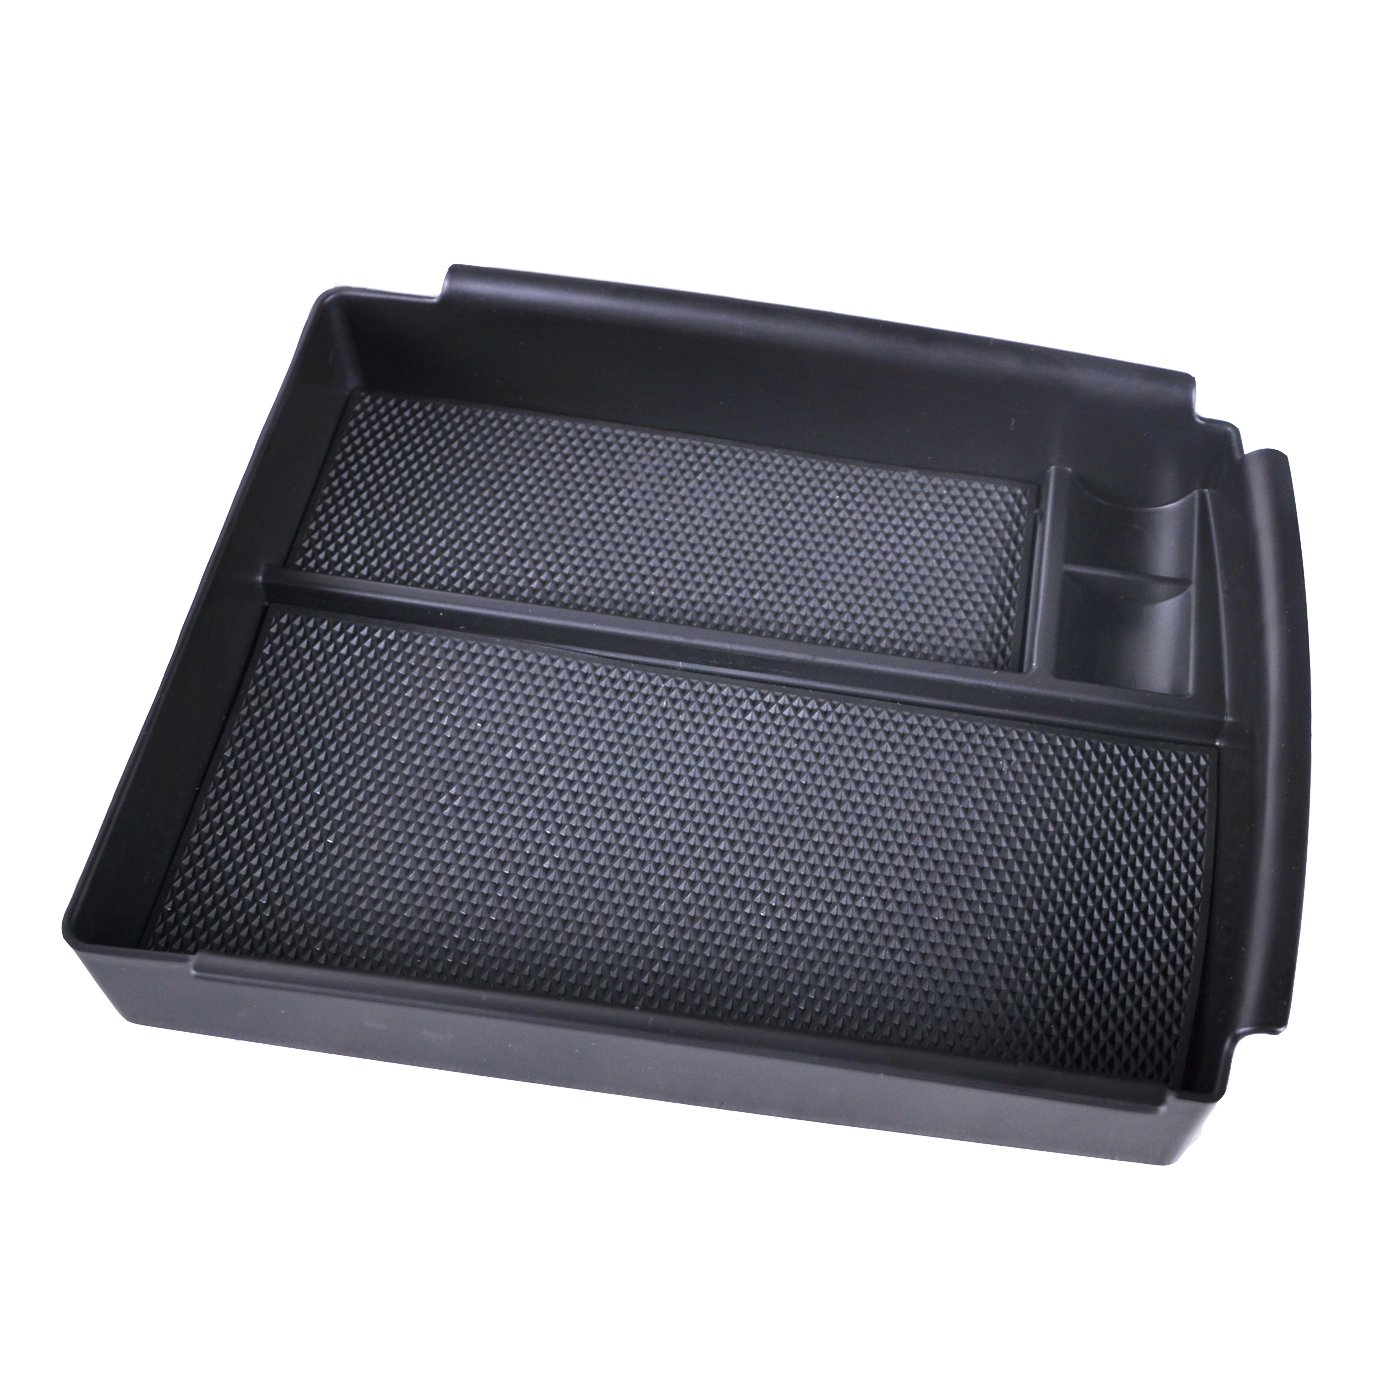 Black Version omotor Center Console Organizer Portable Silicone Center Container//Cup Holder fit for Tesla Model S 2012-2017